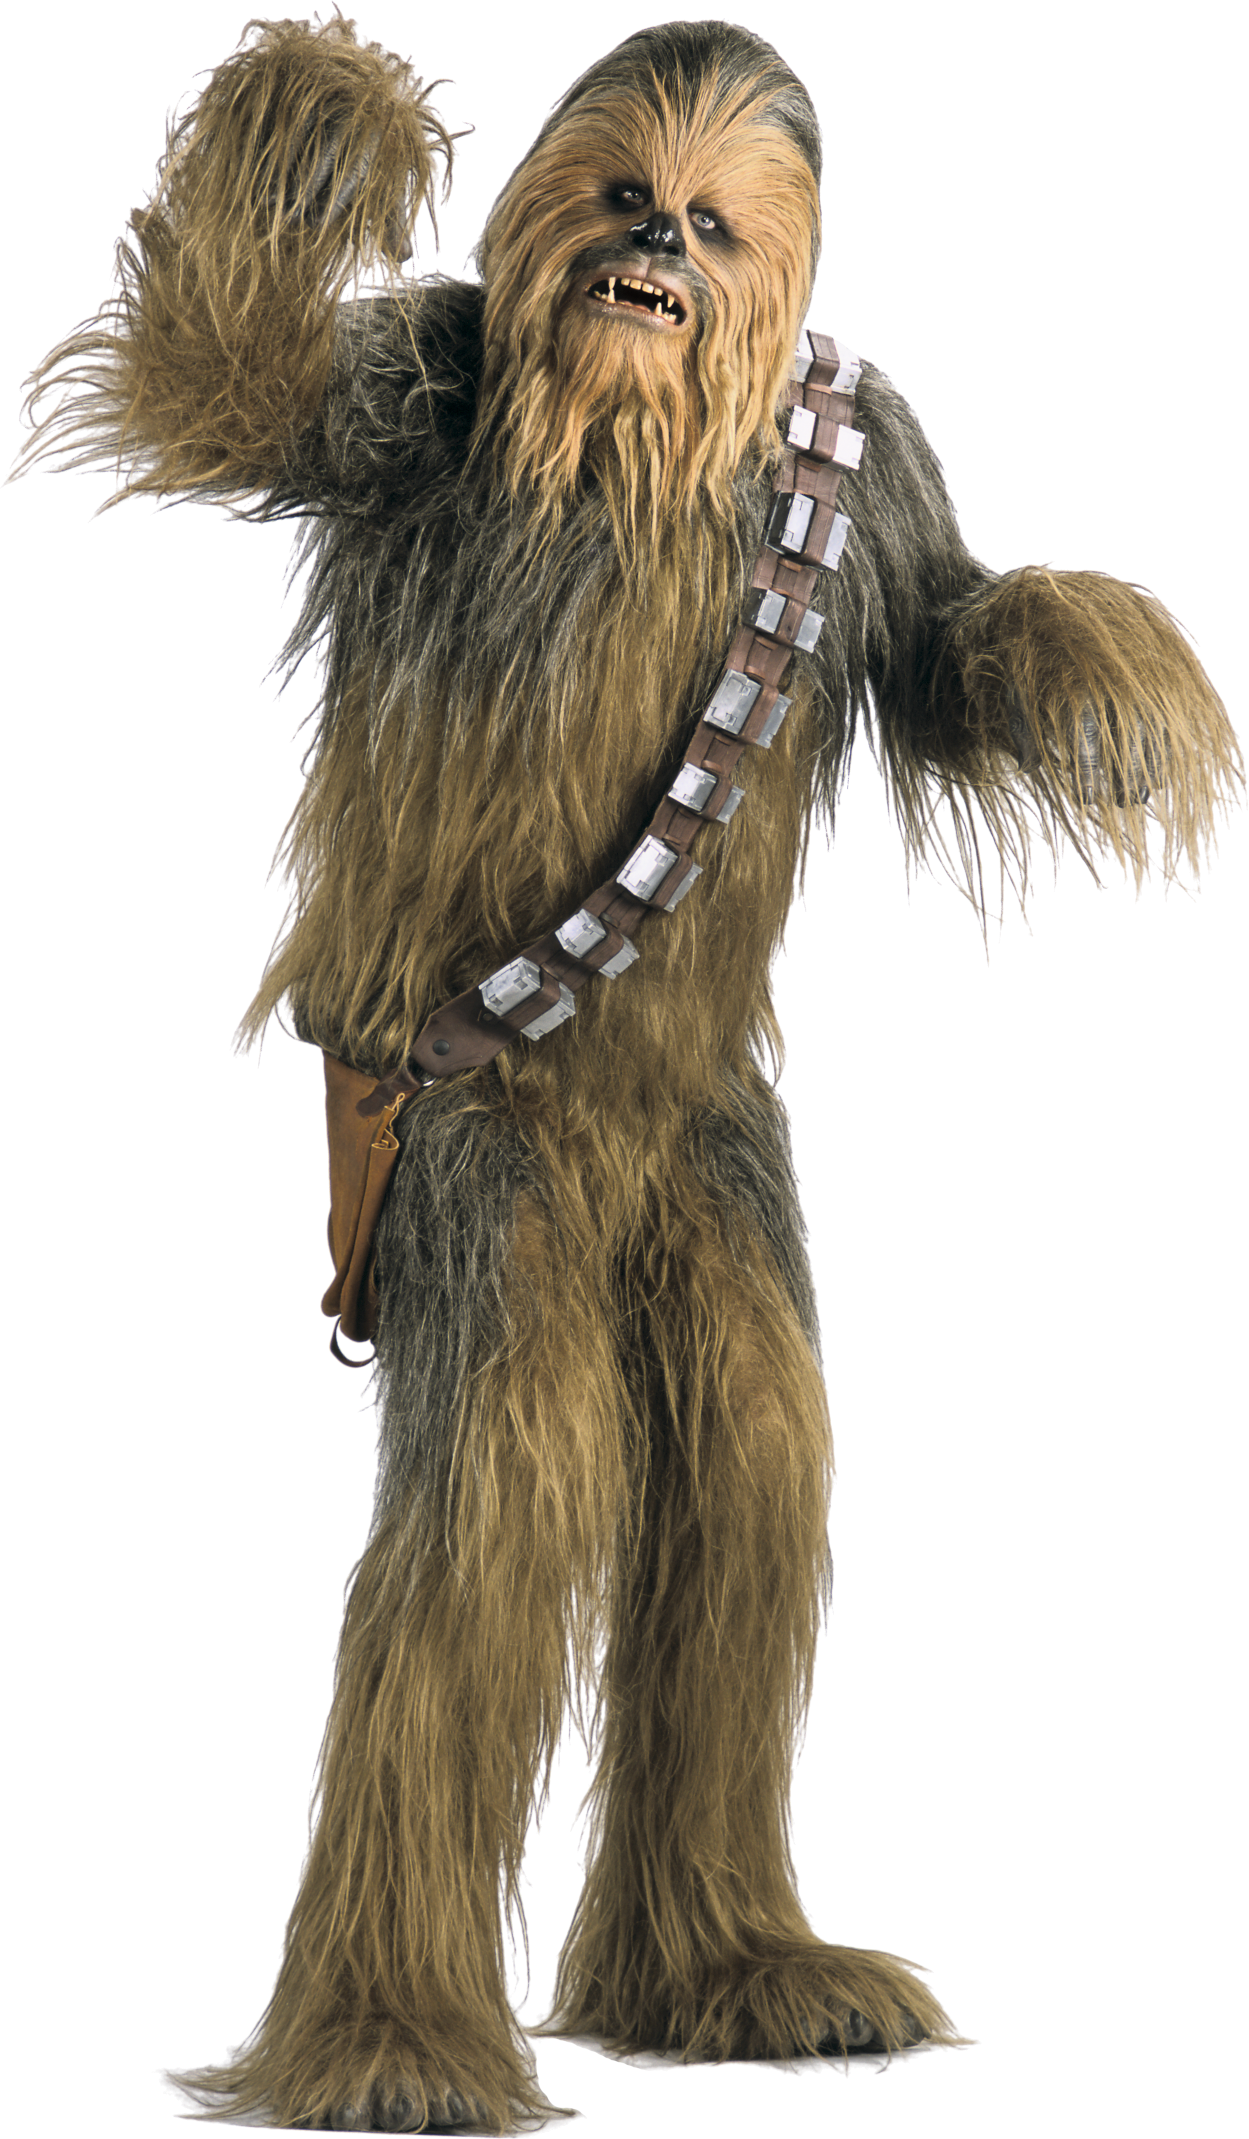 Star wars chewbacca png. Transparent image mart